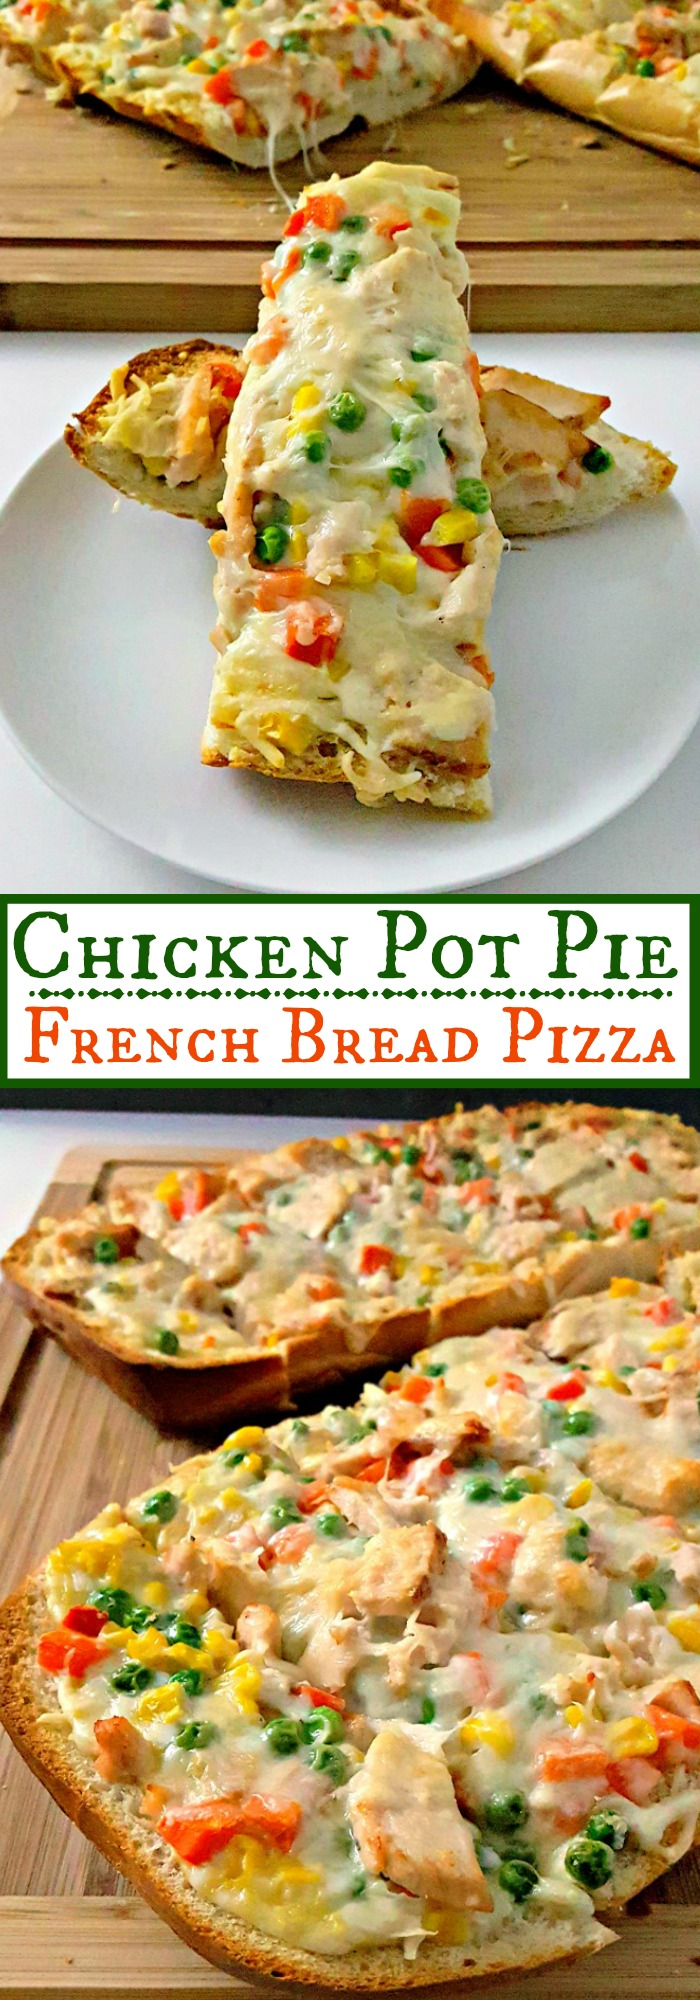 Inspired by a pie event, this Chicken Pot Pie French Bread Pizza is a mash up two comfort foods.  It's super quick and easy to make for any night of the week.